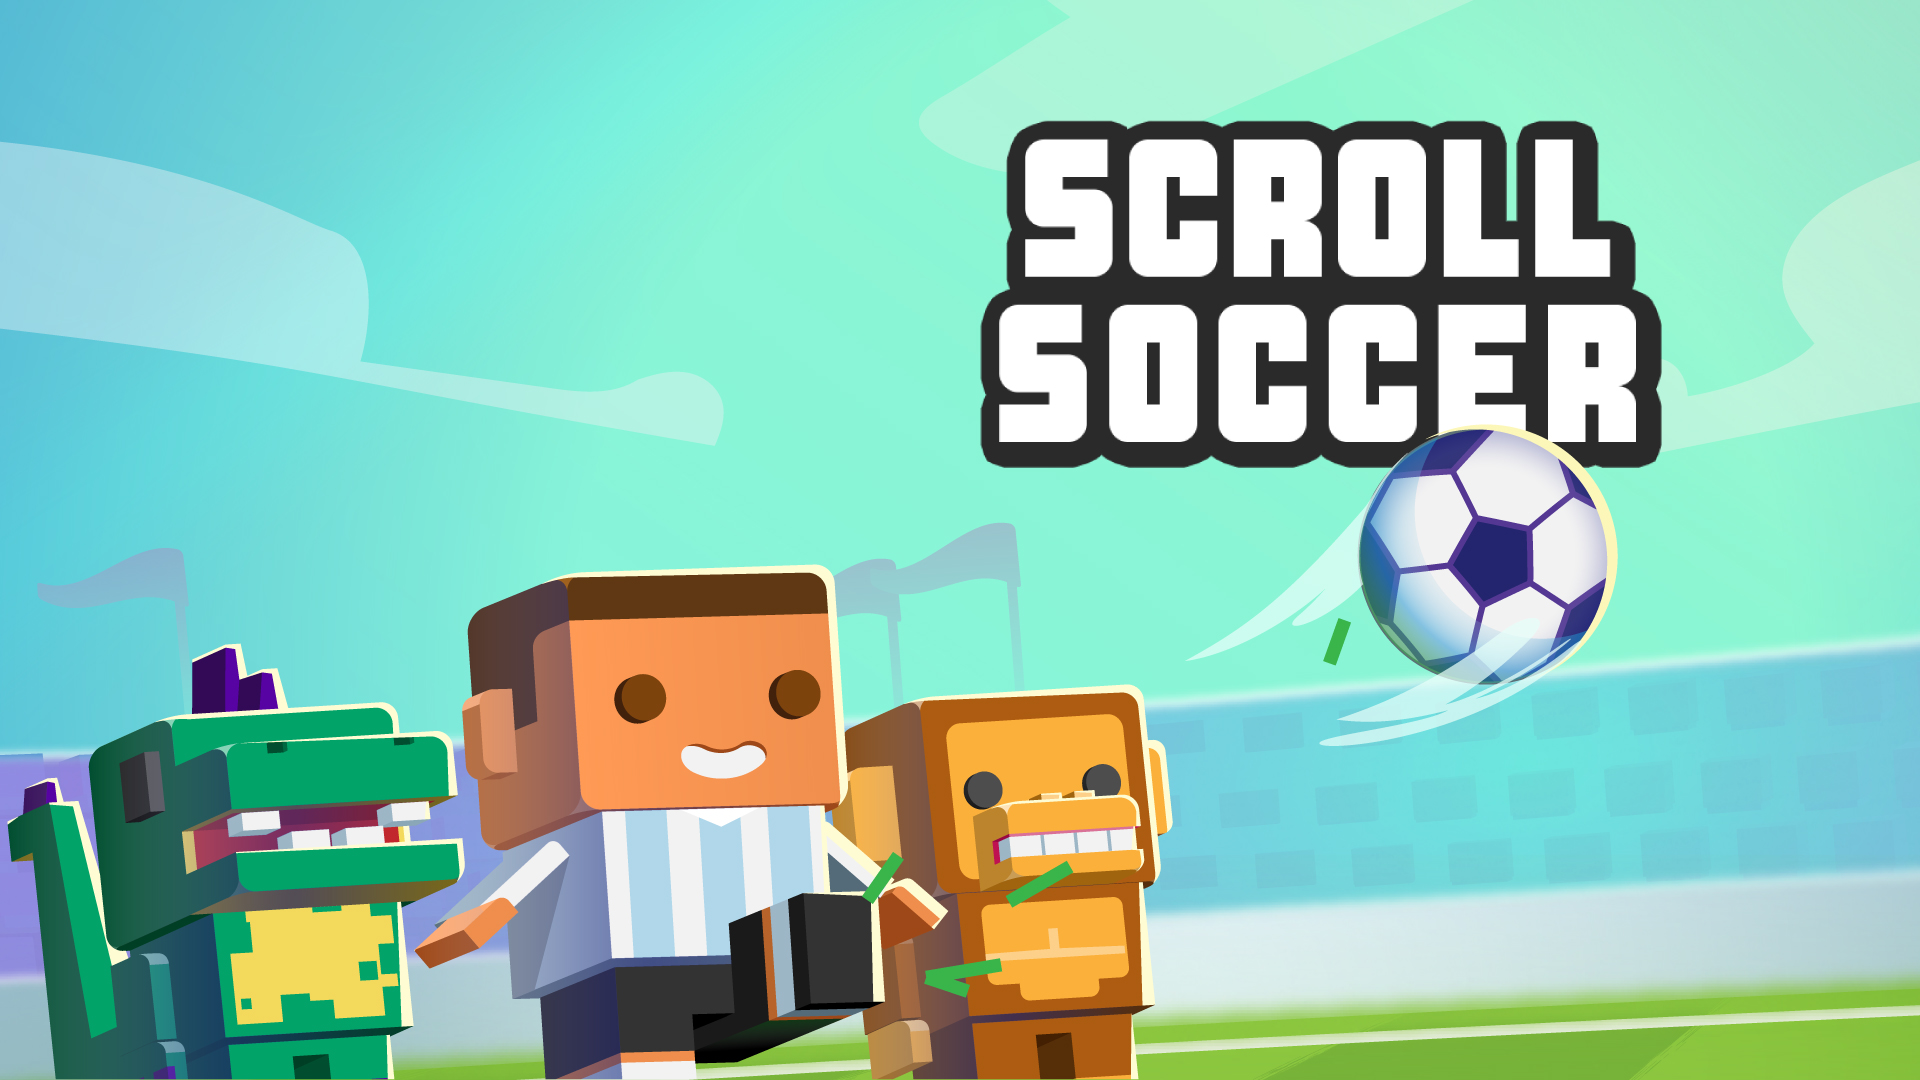 Scroll Soccer